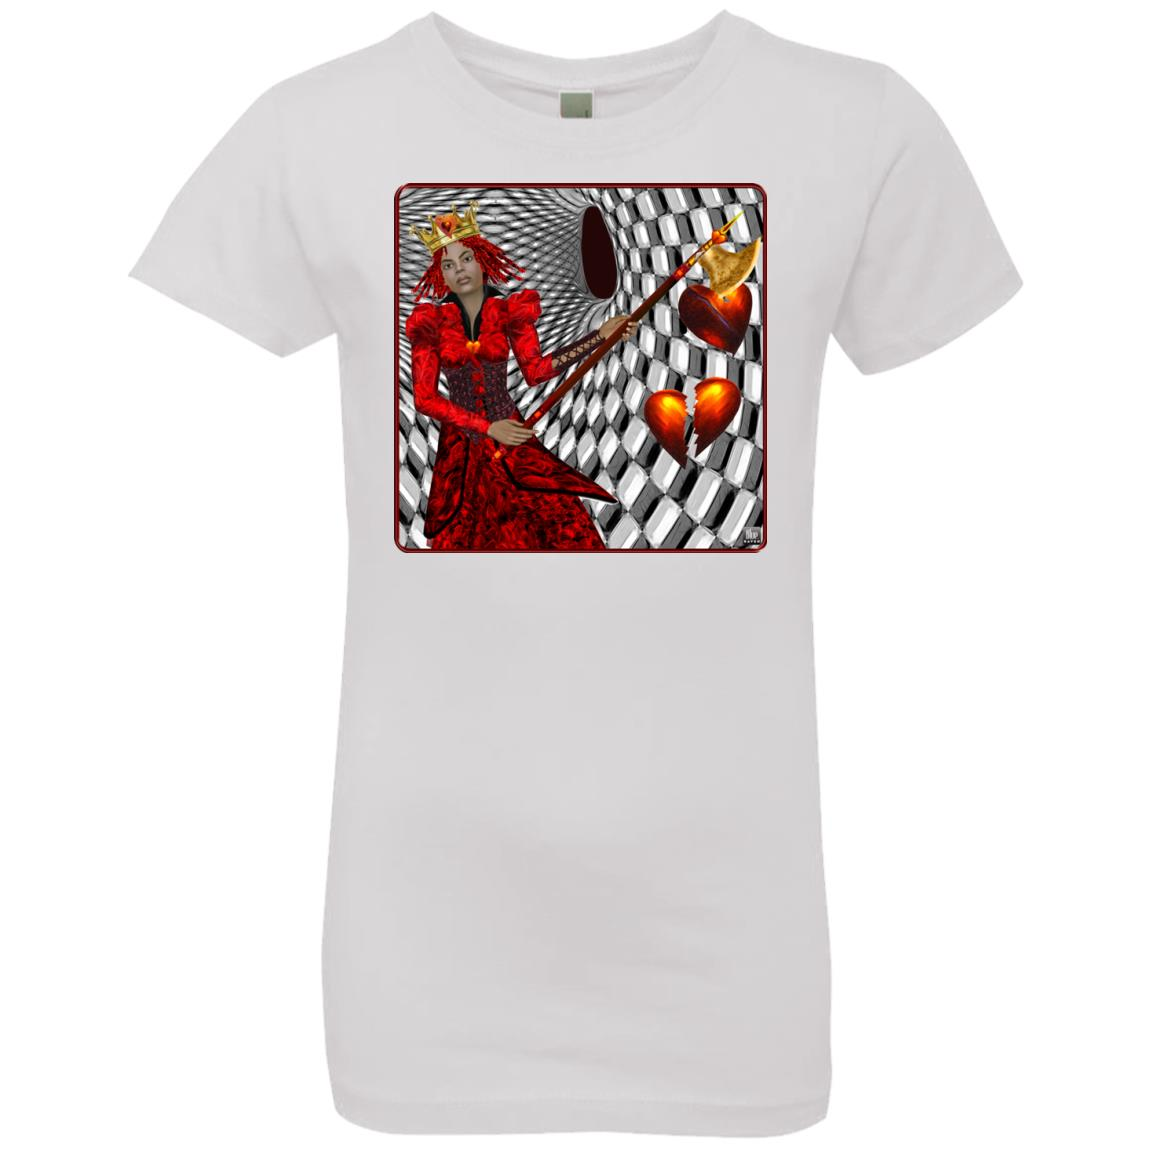 portrait of the queen of hearts - Girl's Premium Cotton T-Shirt